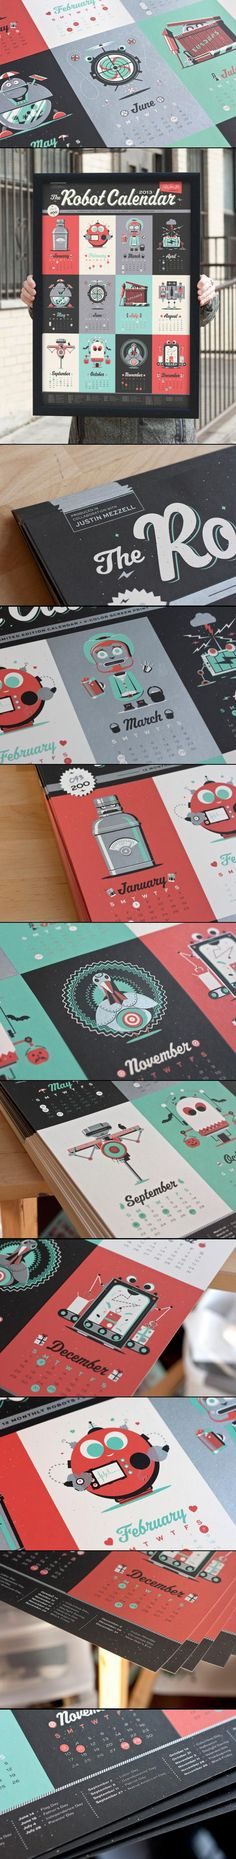 The 2013 Robot Calendar. A limited edition poster-style calendar featuring 12 original monthly-themed robot characters. Illustrated by Ross Moody in collaboration with Justin Mezzell each calendar is a 16-by-24-inch, 4-color screenprint that is hand numbered in a limited edition run of 200.